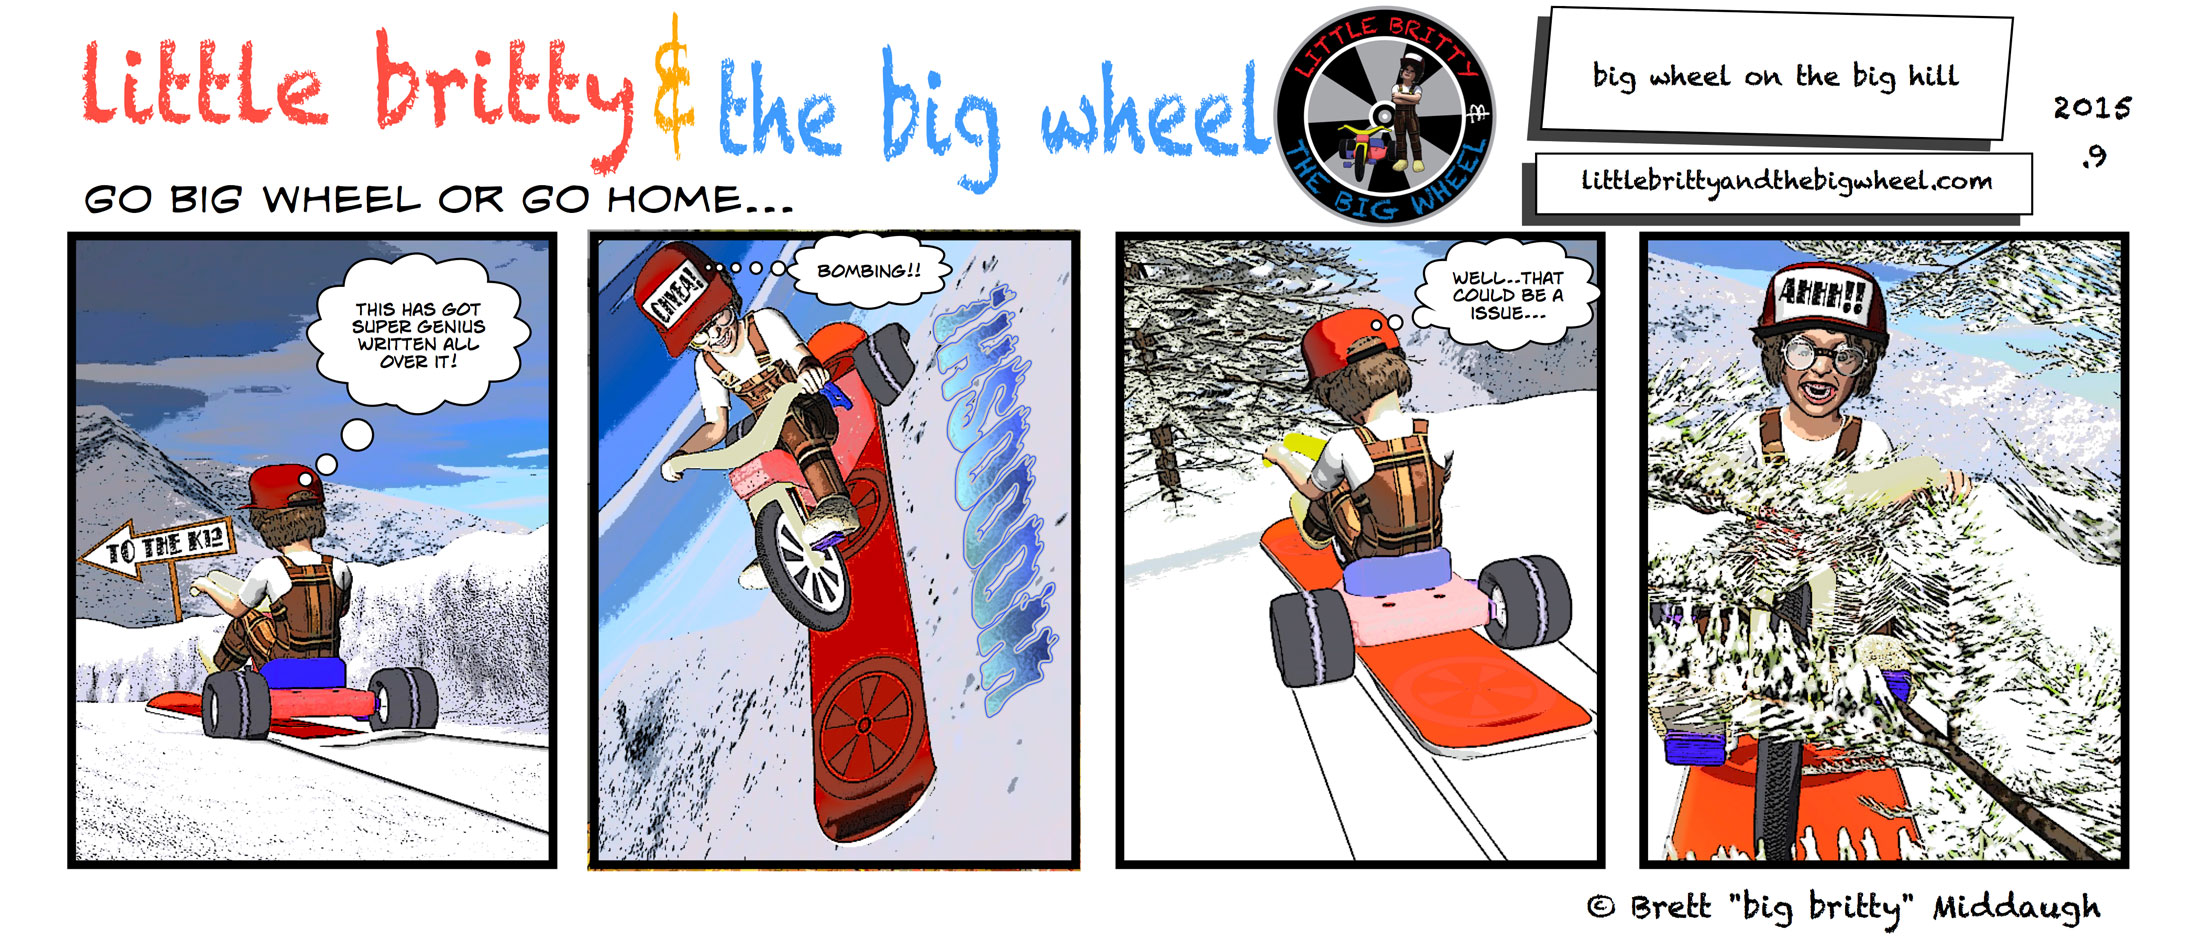 big wheel on a big hill #61